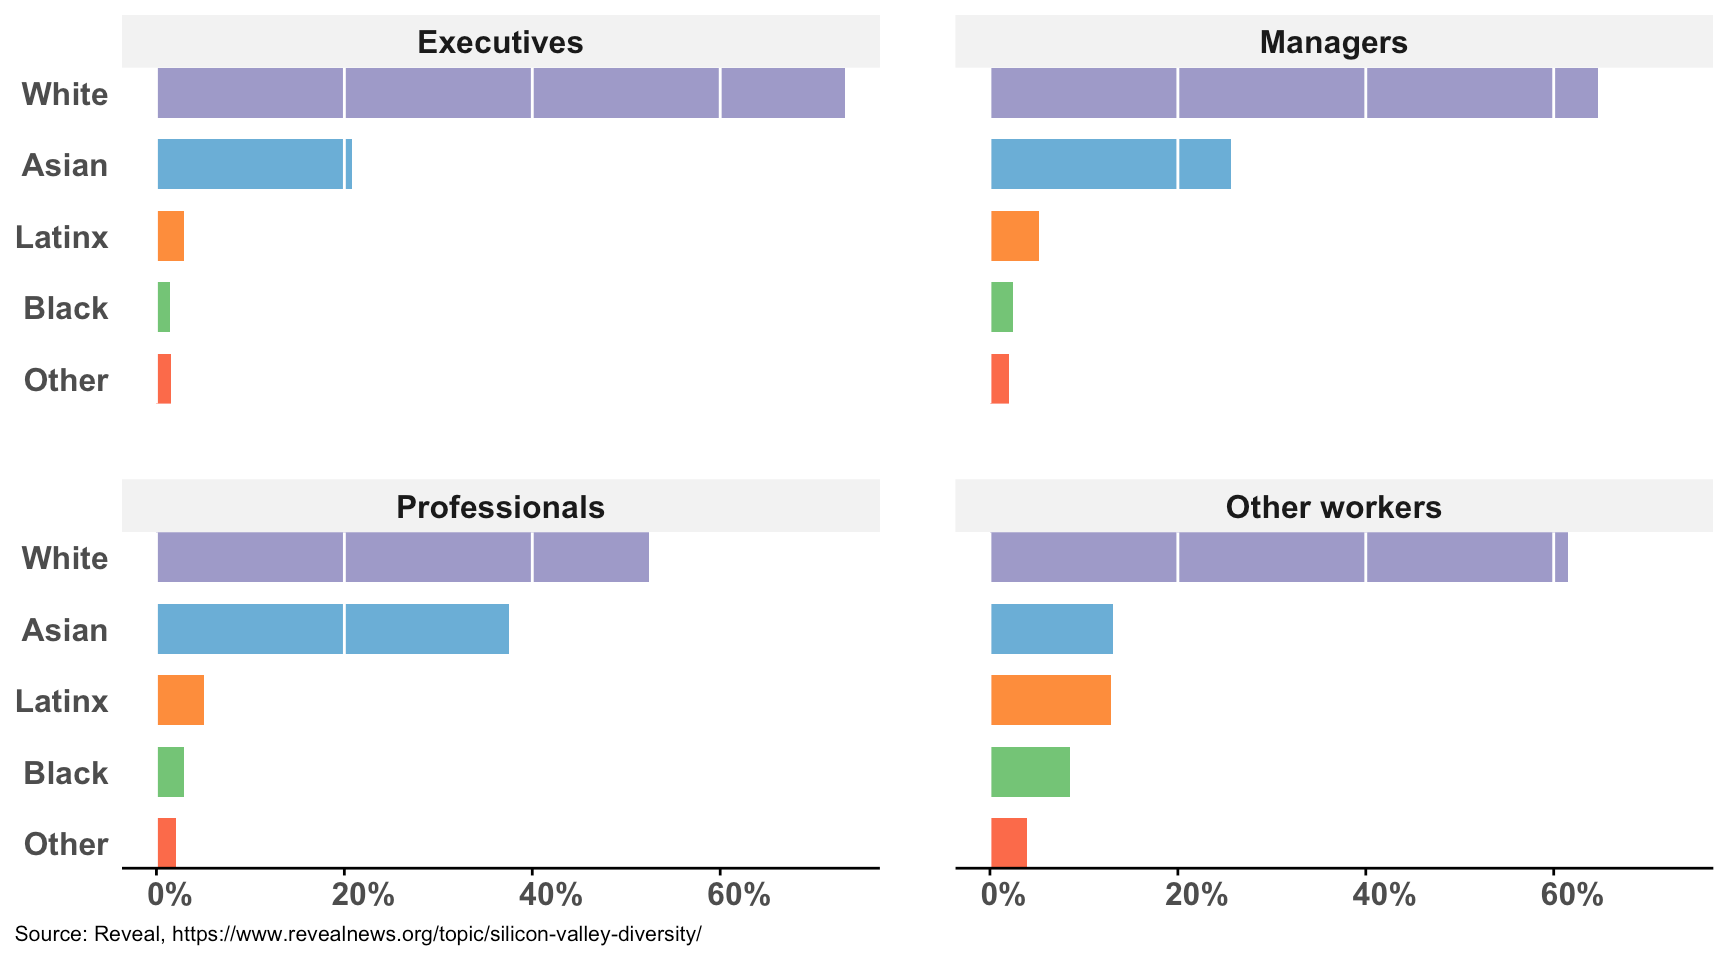 Bar chart panels showing ethnicity/race of employees in Silicon Valley companies by job category